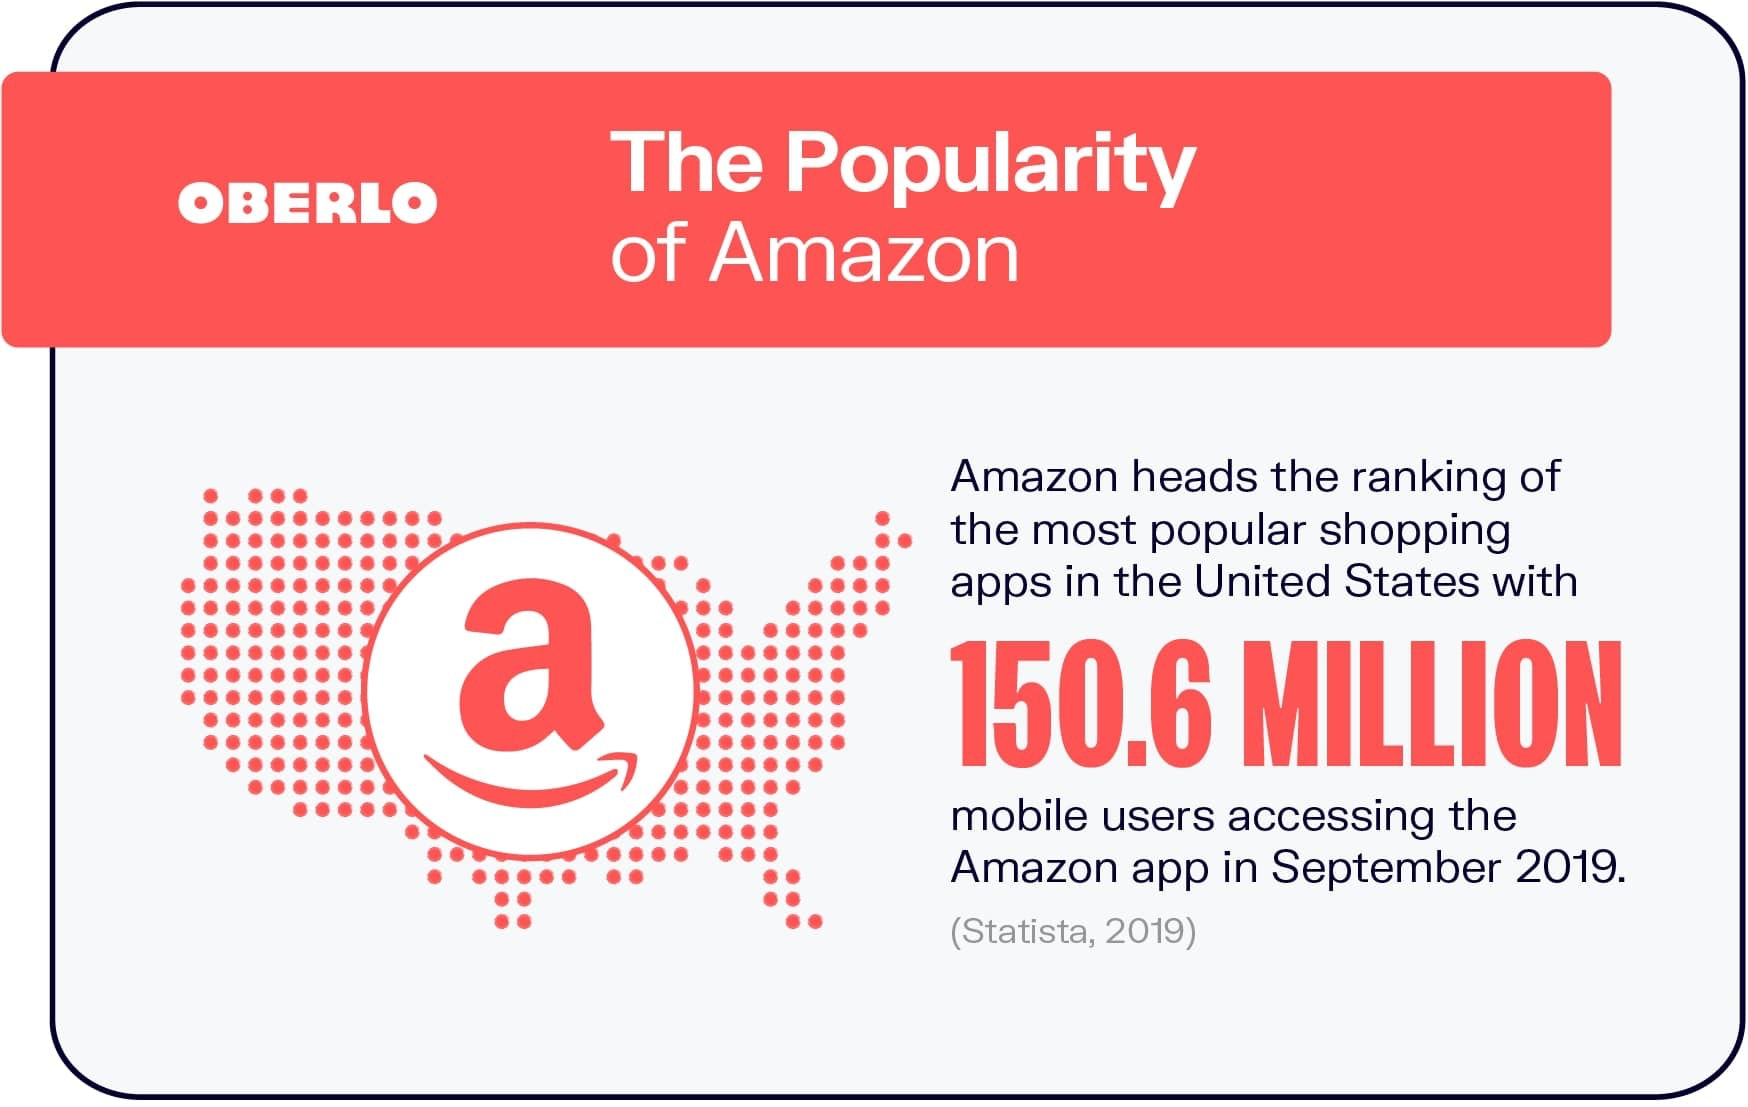 The Popularity of Amazon